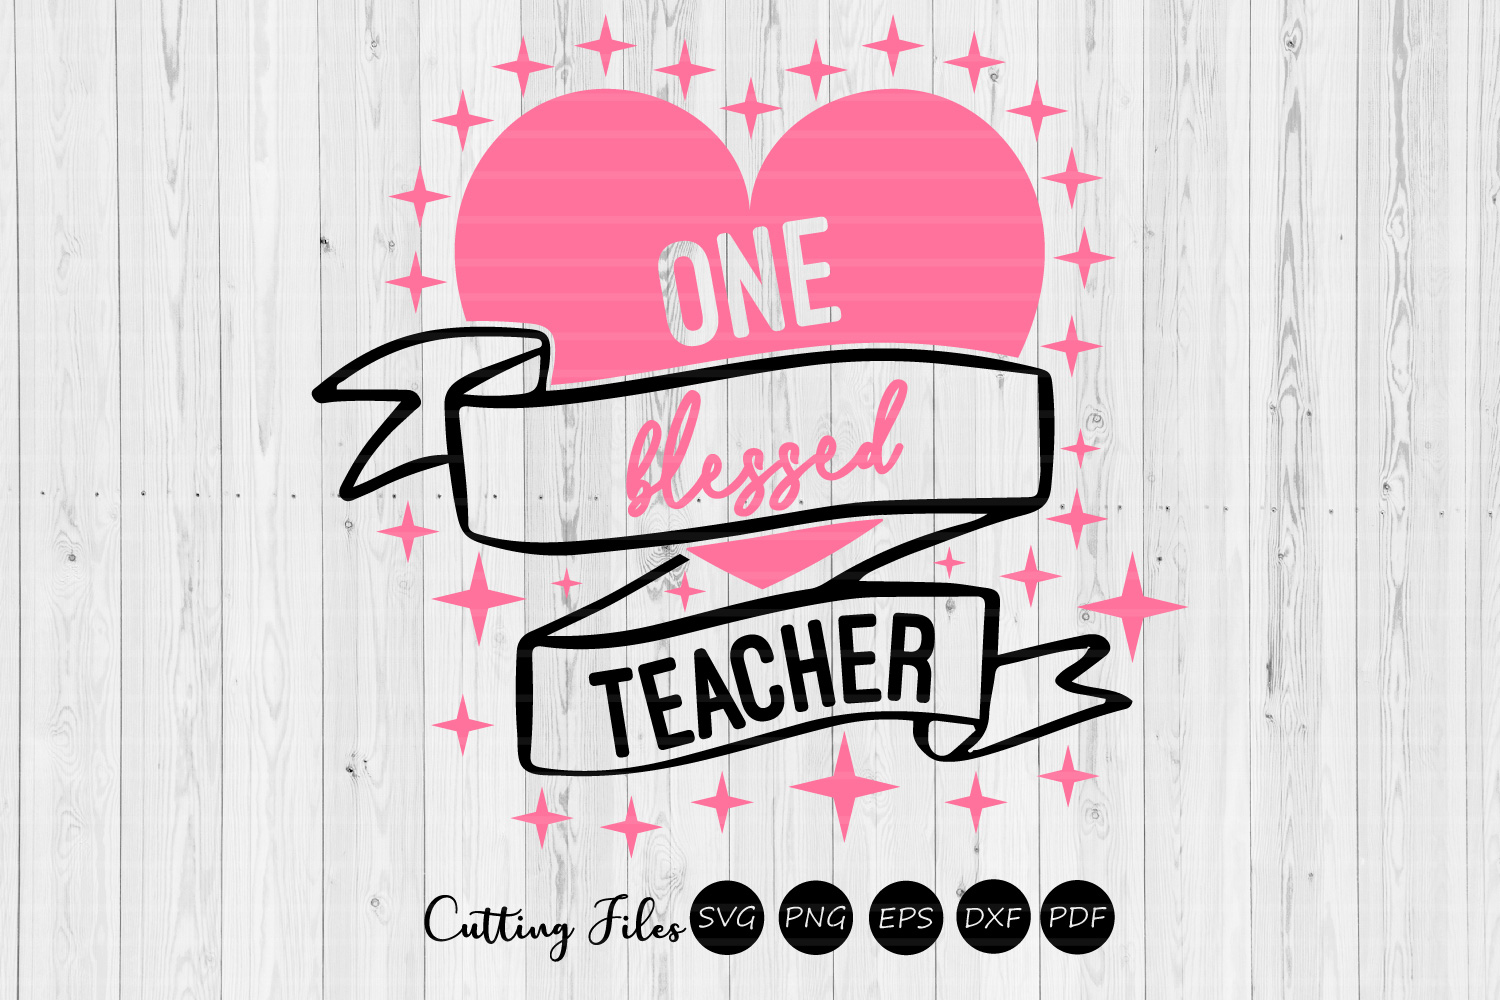 One Blessed Teacher   SVG Cut file   Teaching   example image 2